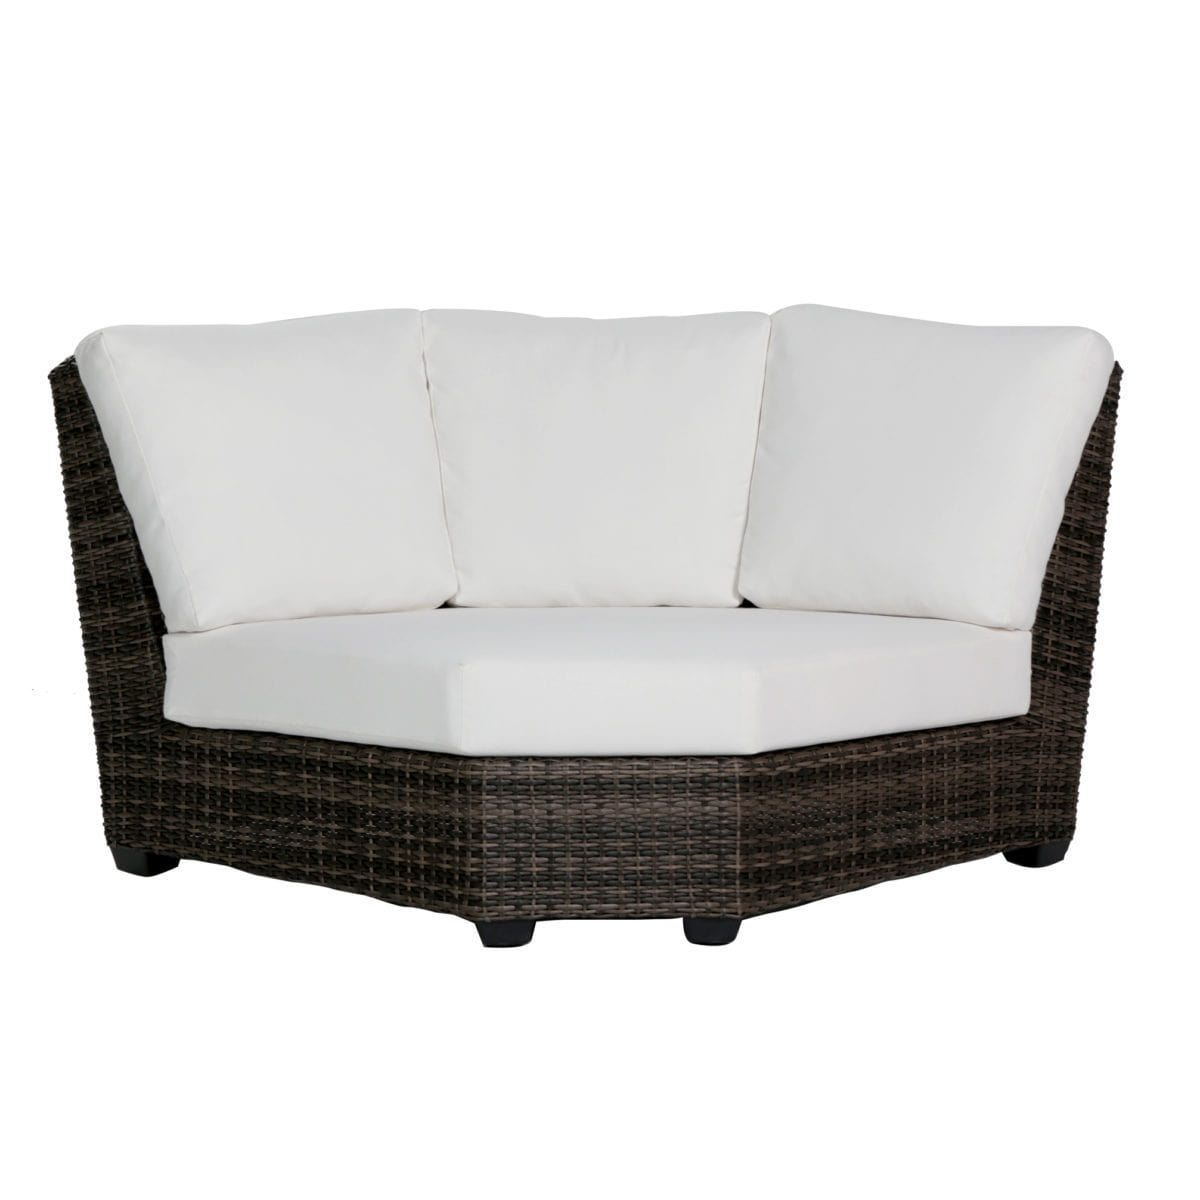 Ratana wicker Coral Gables Curved Corner